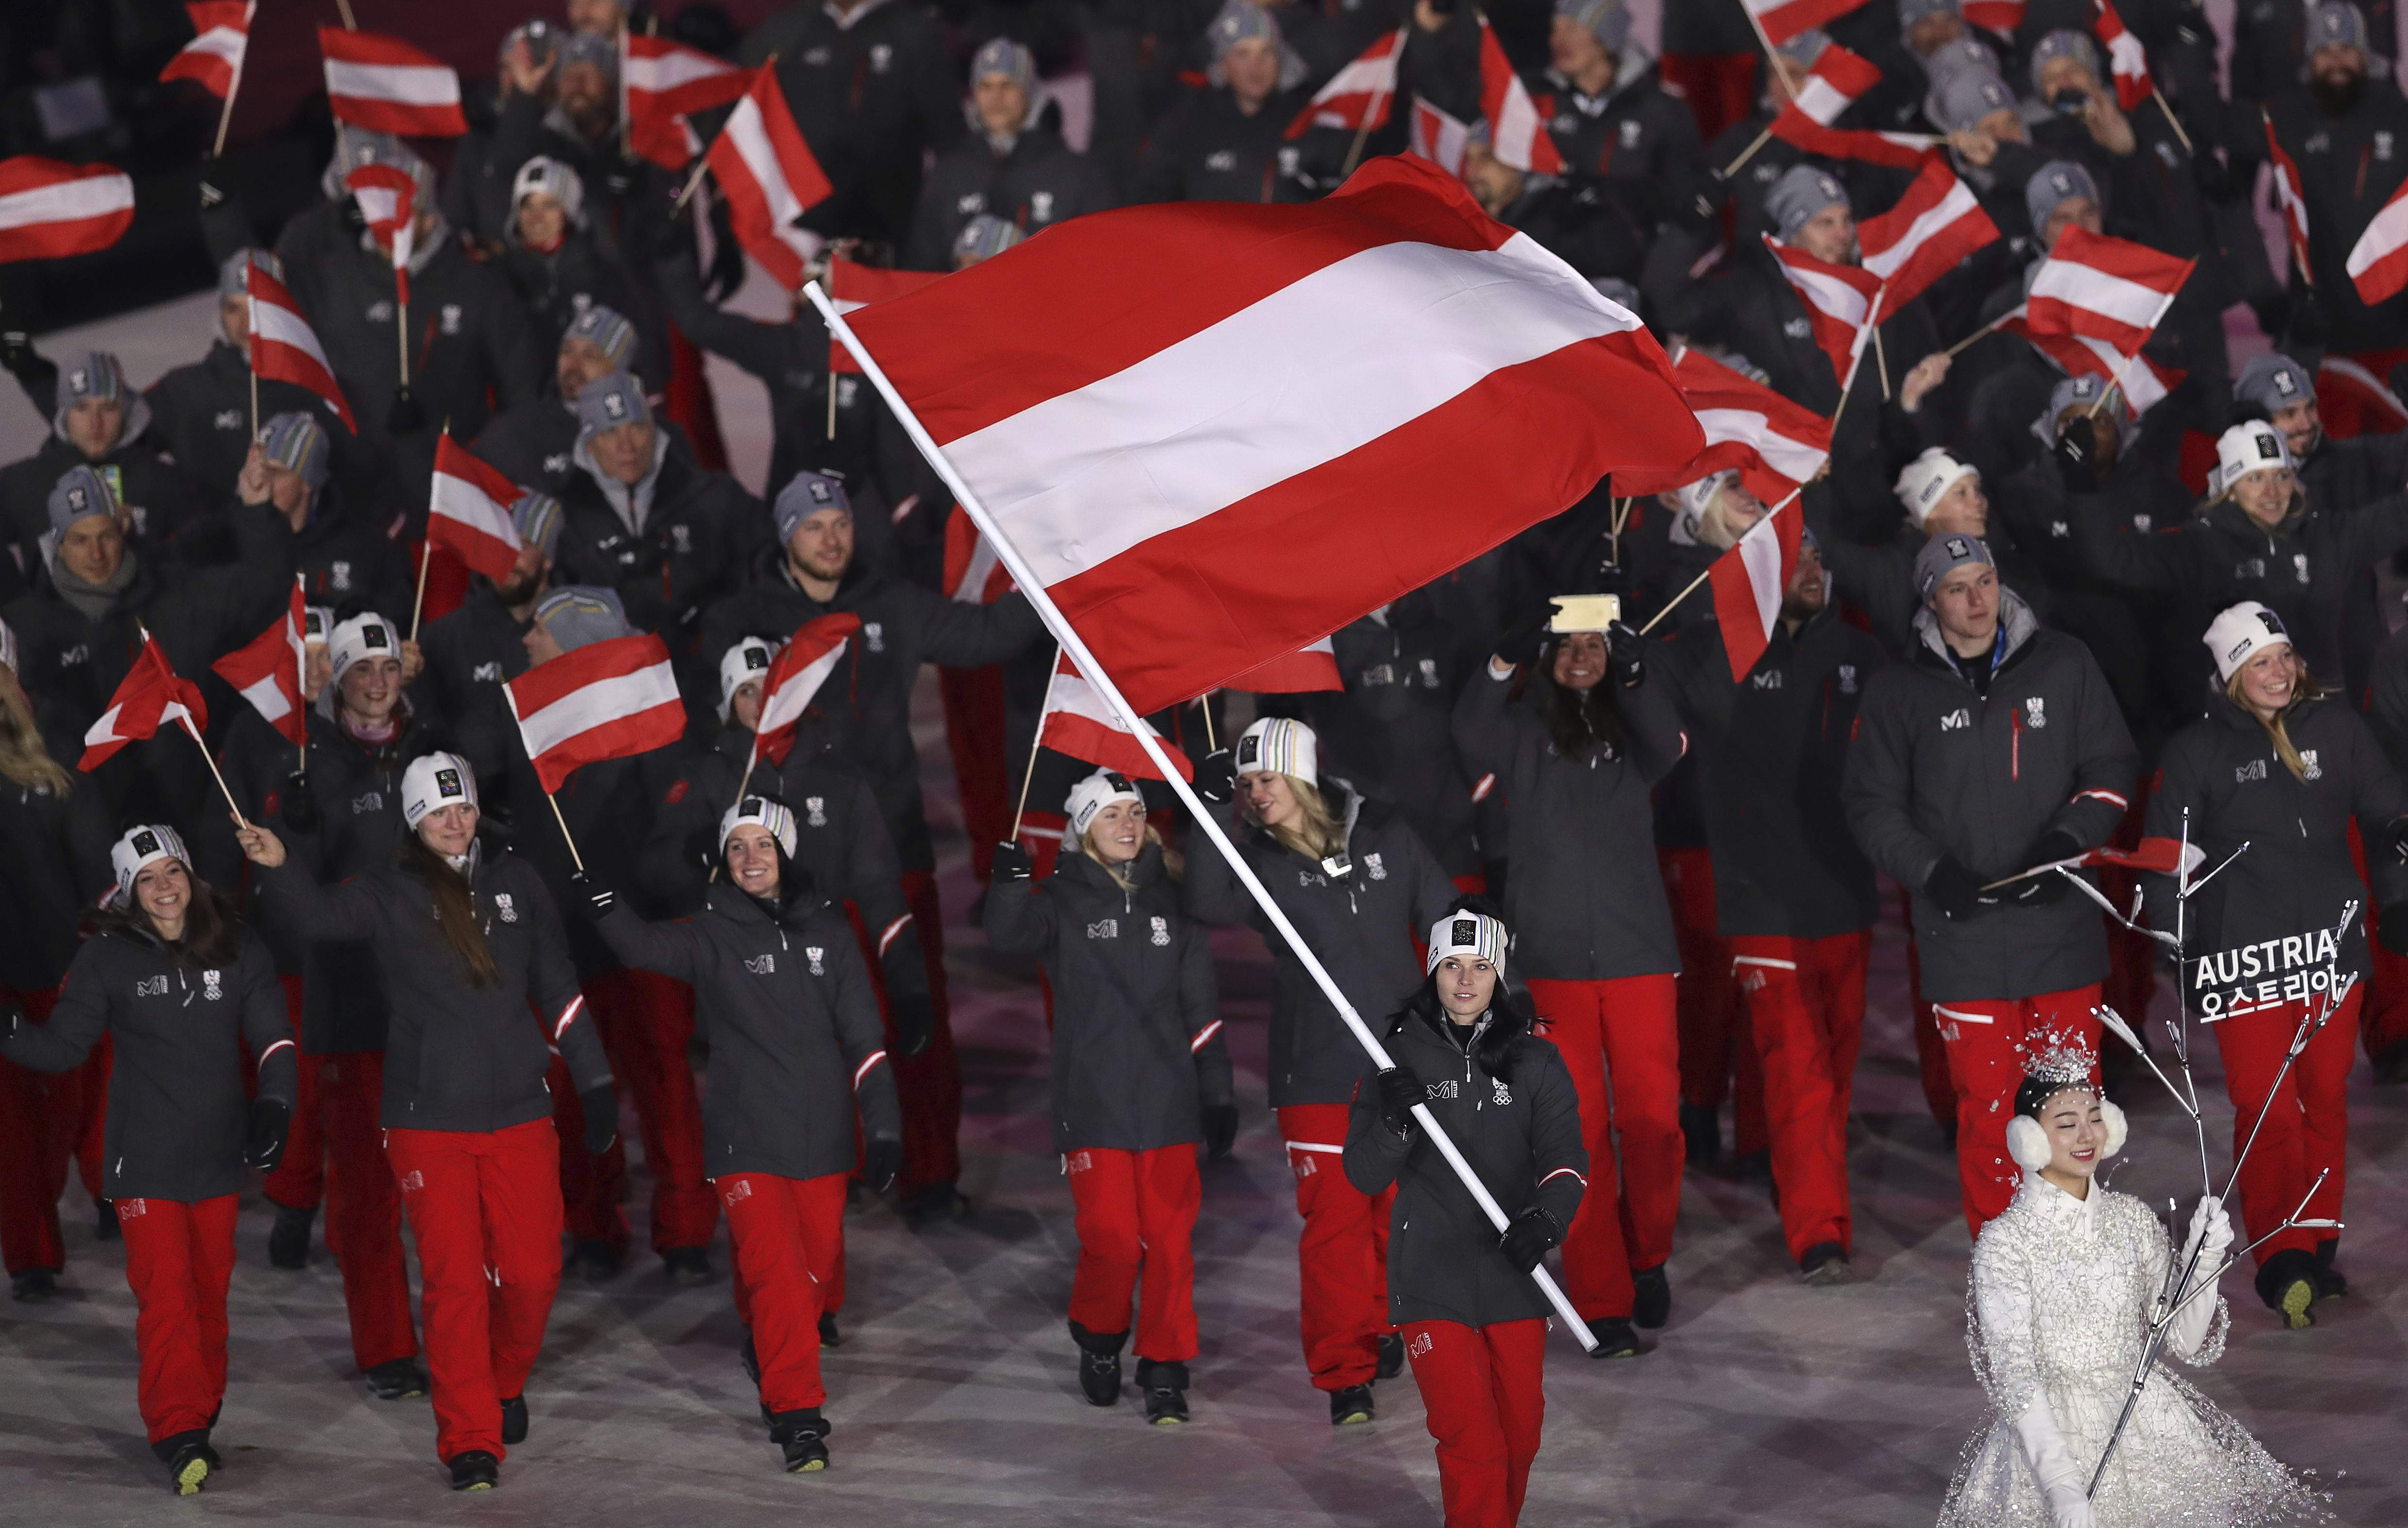 Anna Keith carries the flag of Austria during the opening ceremony of the 2018 Winter Olympics in Pyeongchang, South Korea, Friday, Feb. 9, 2018. (AP Photo/Michael Sohn)